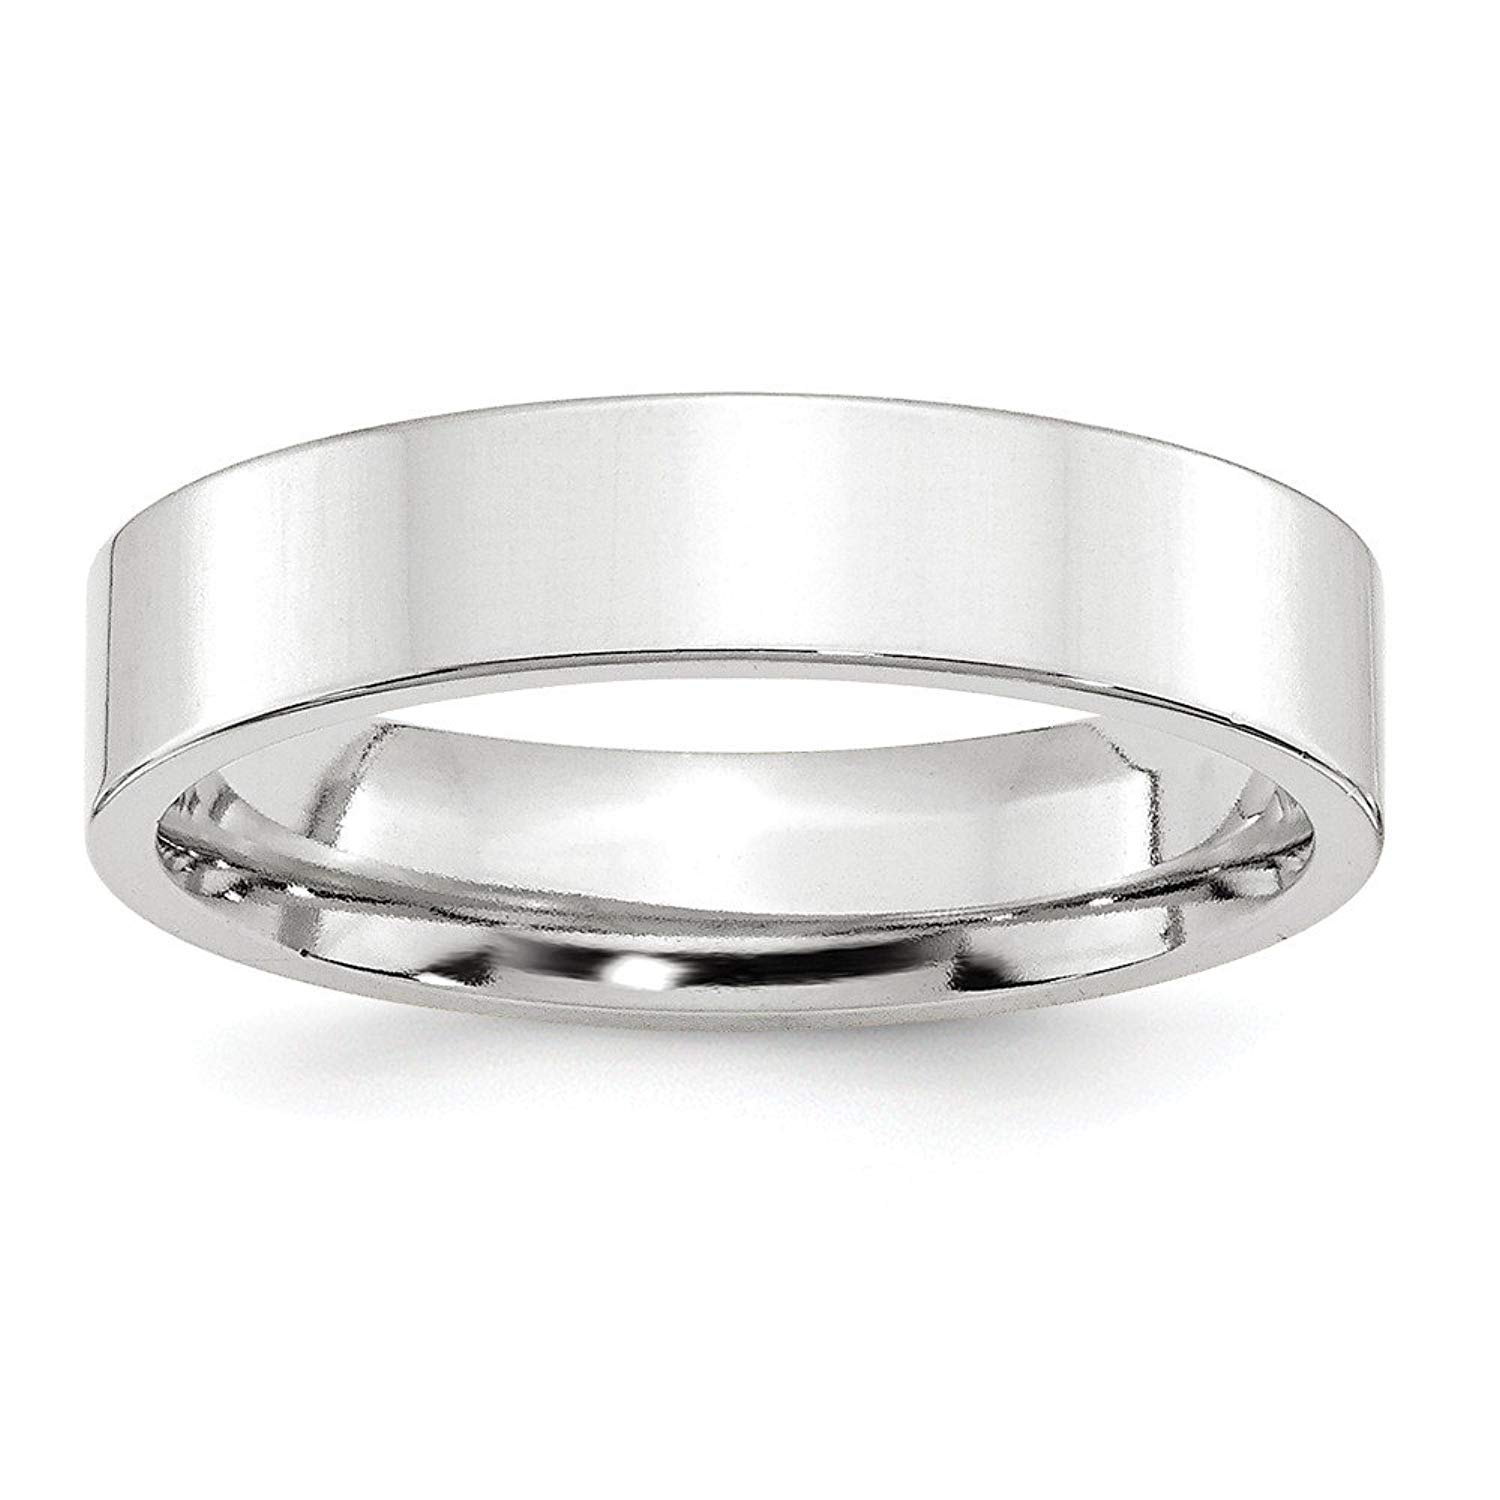 Perfect Jewelry Gift 14KW 5mm Standard Flat Comfort Fit Band Size 8